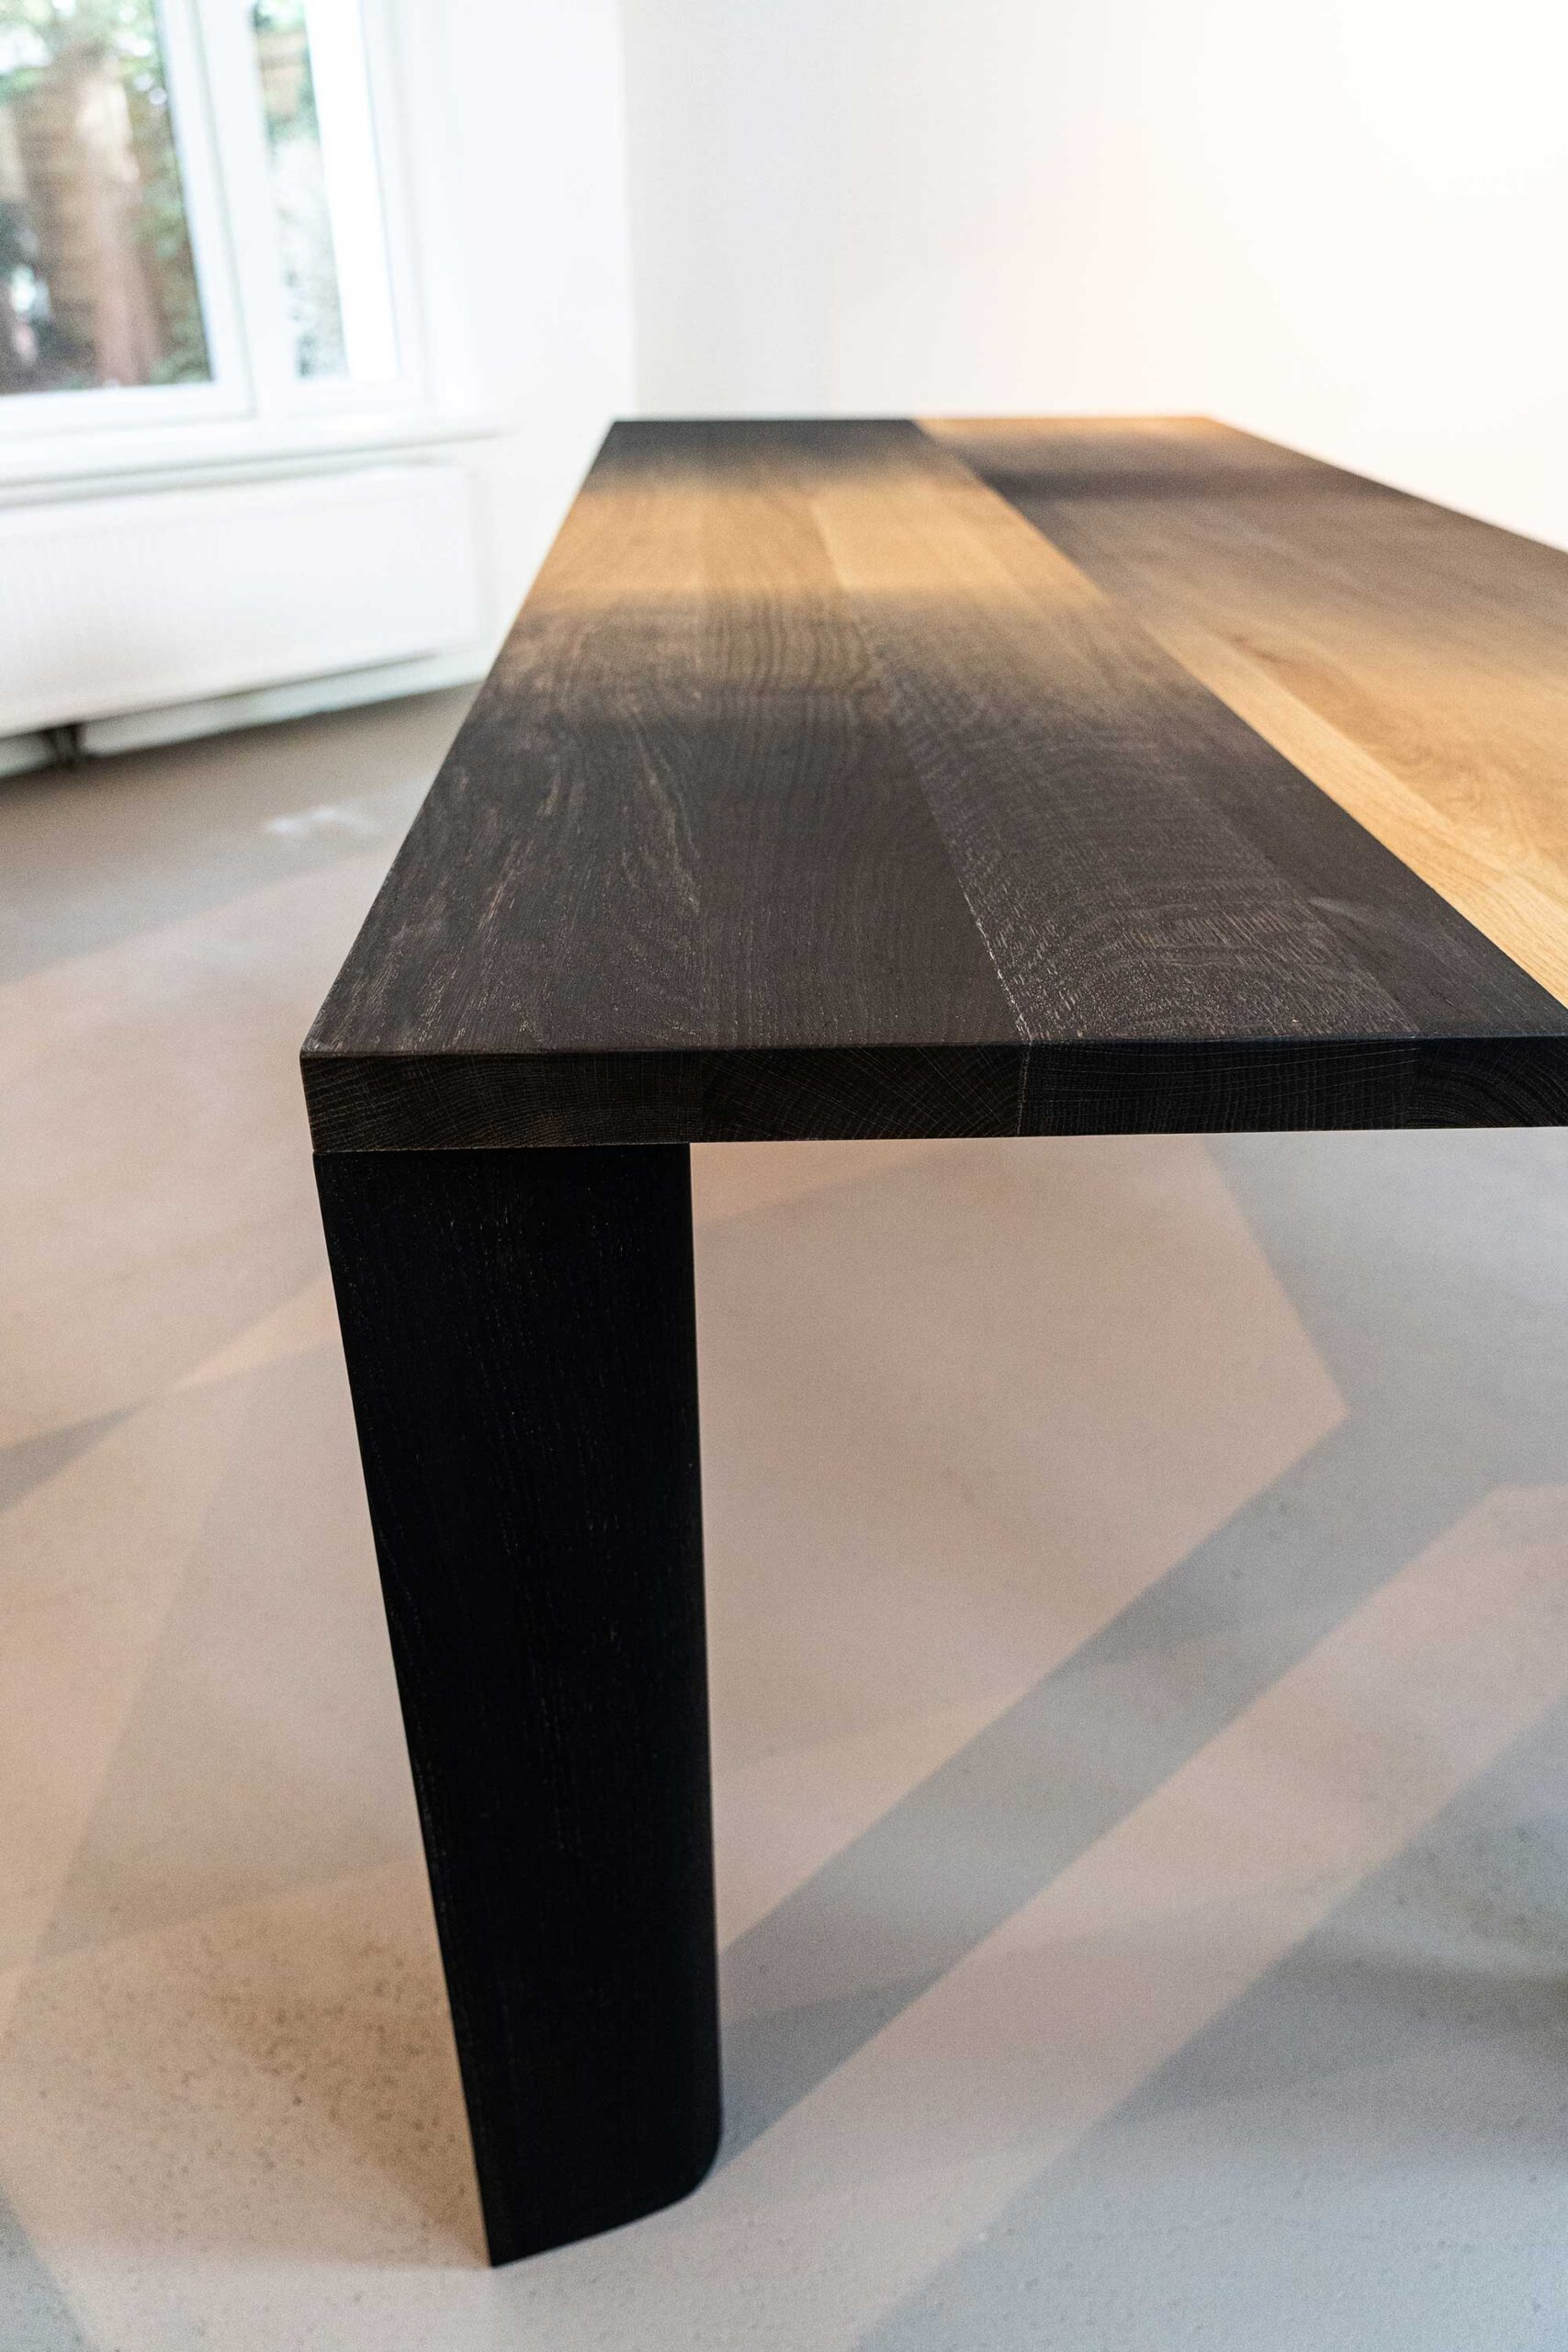 Airfoil_table_transnatural_05